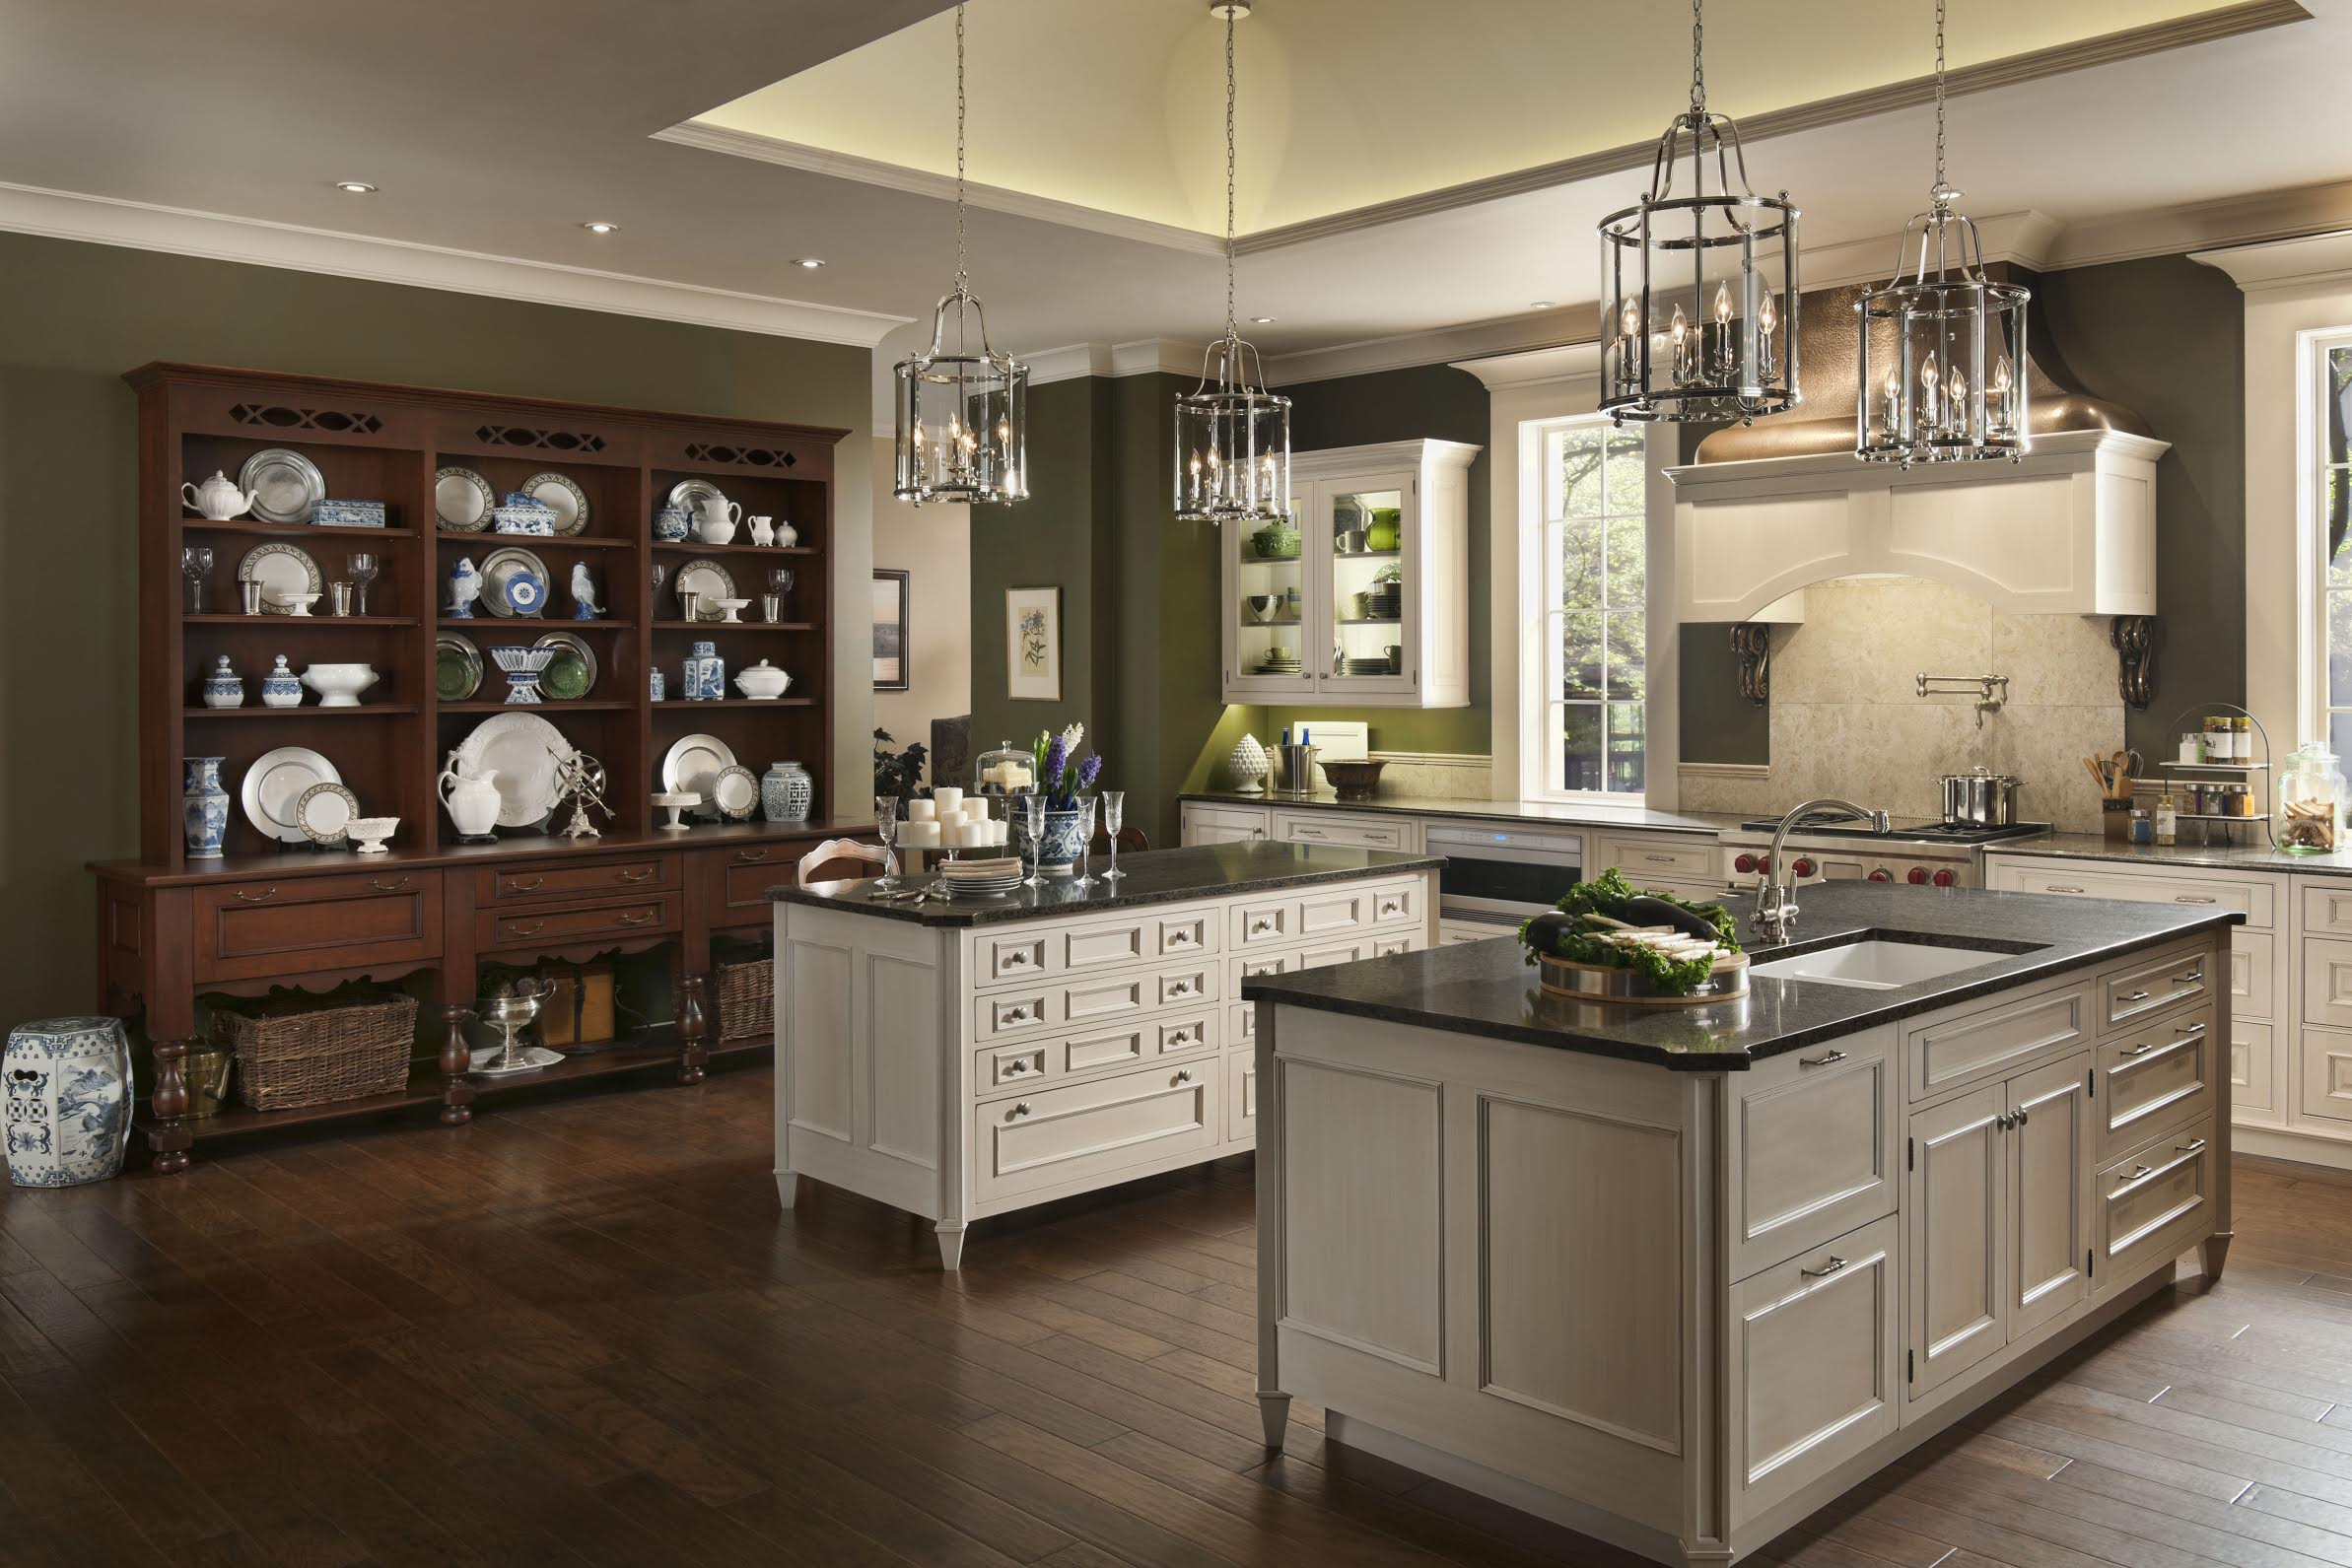 brookhaven kitchen cabinets fruit basket wood mode and design themes cabinet innovations